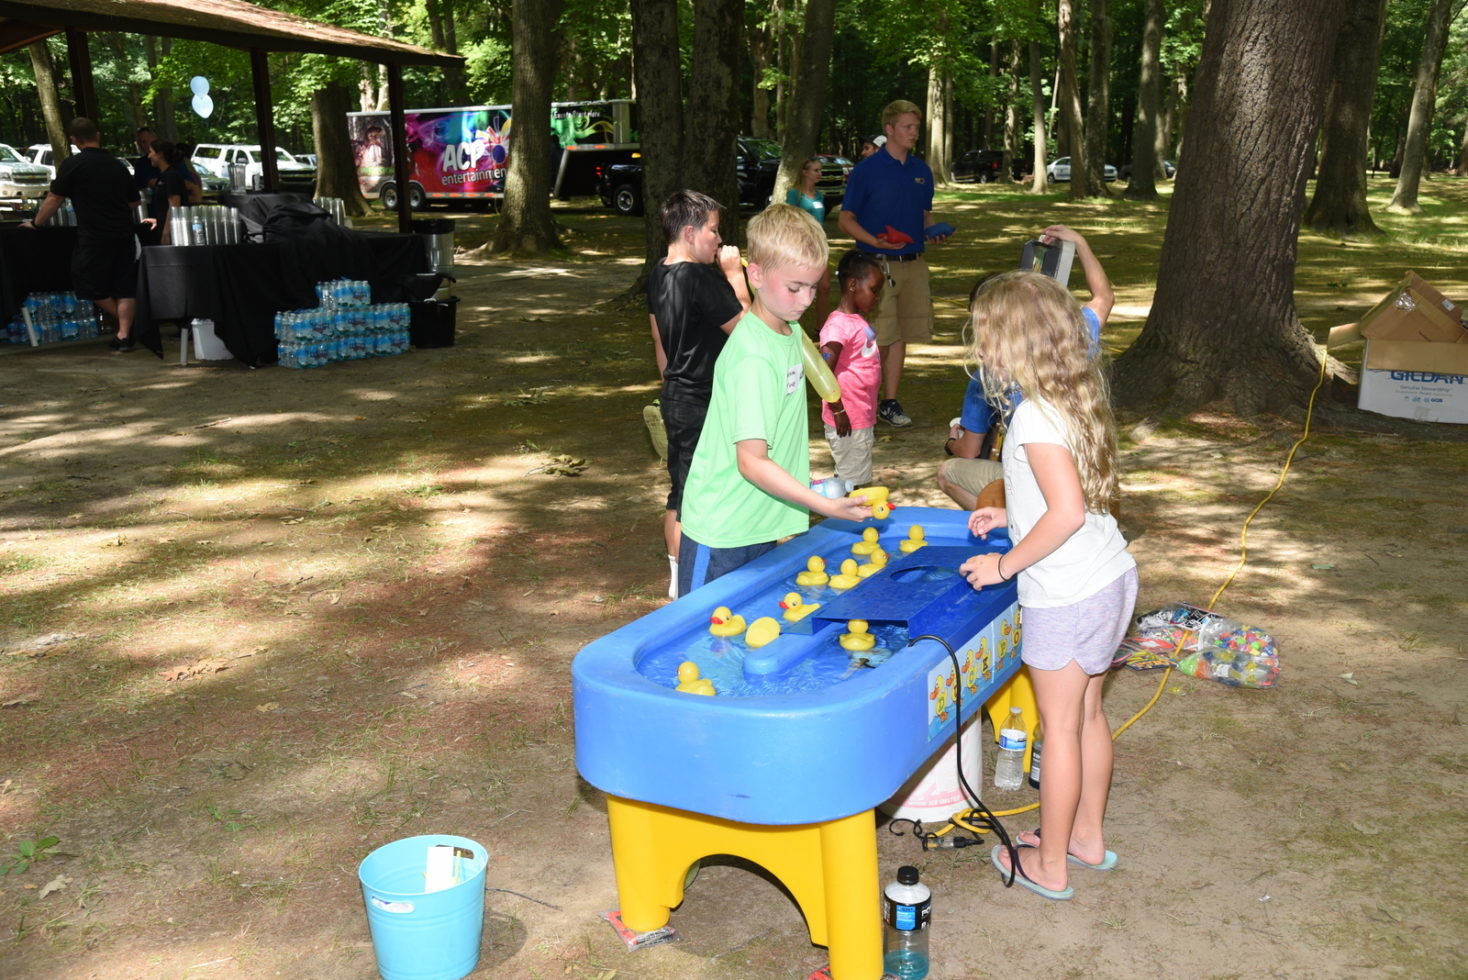 Kids playing duck pond game